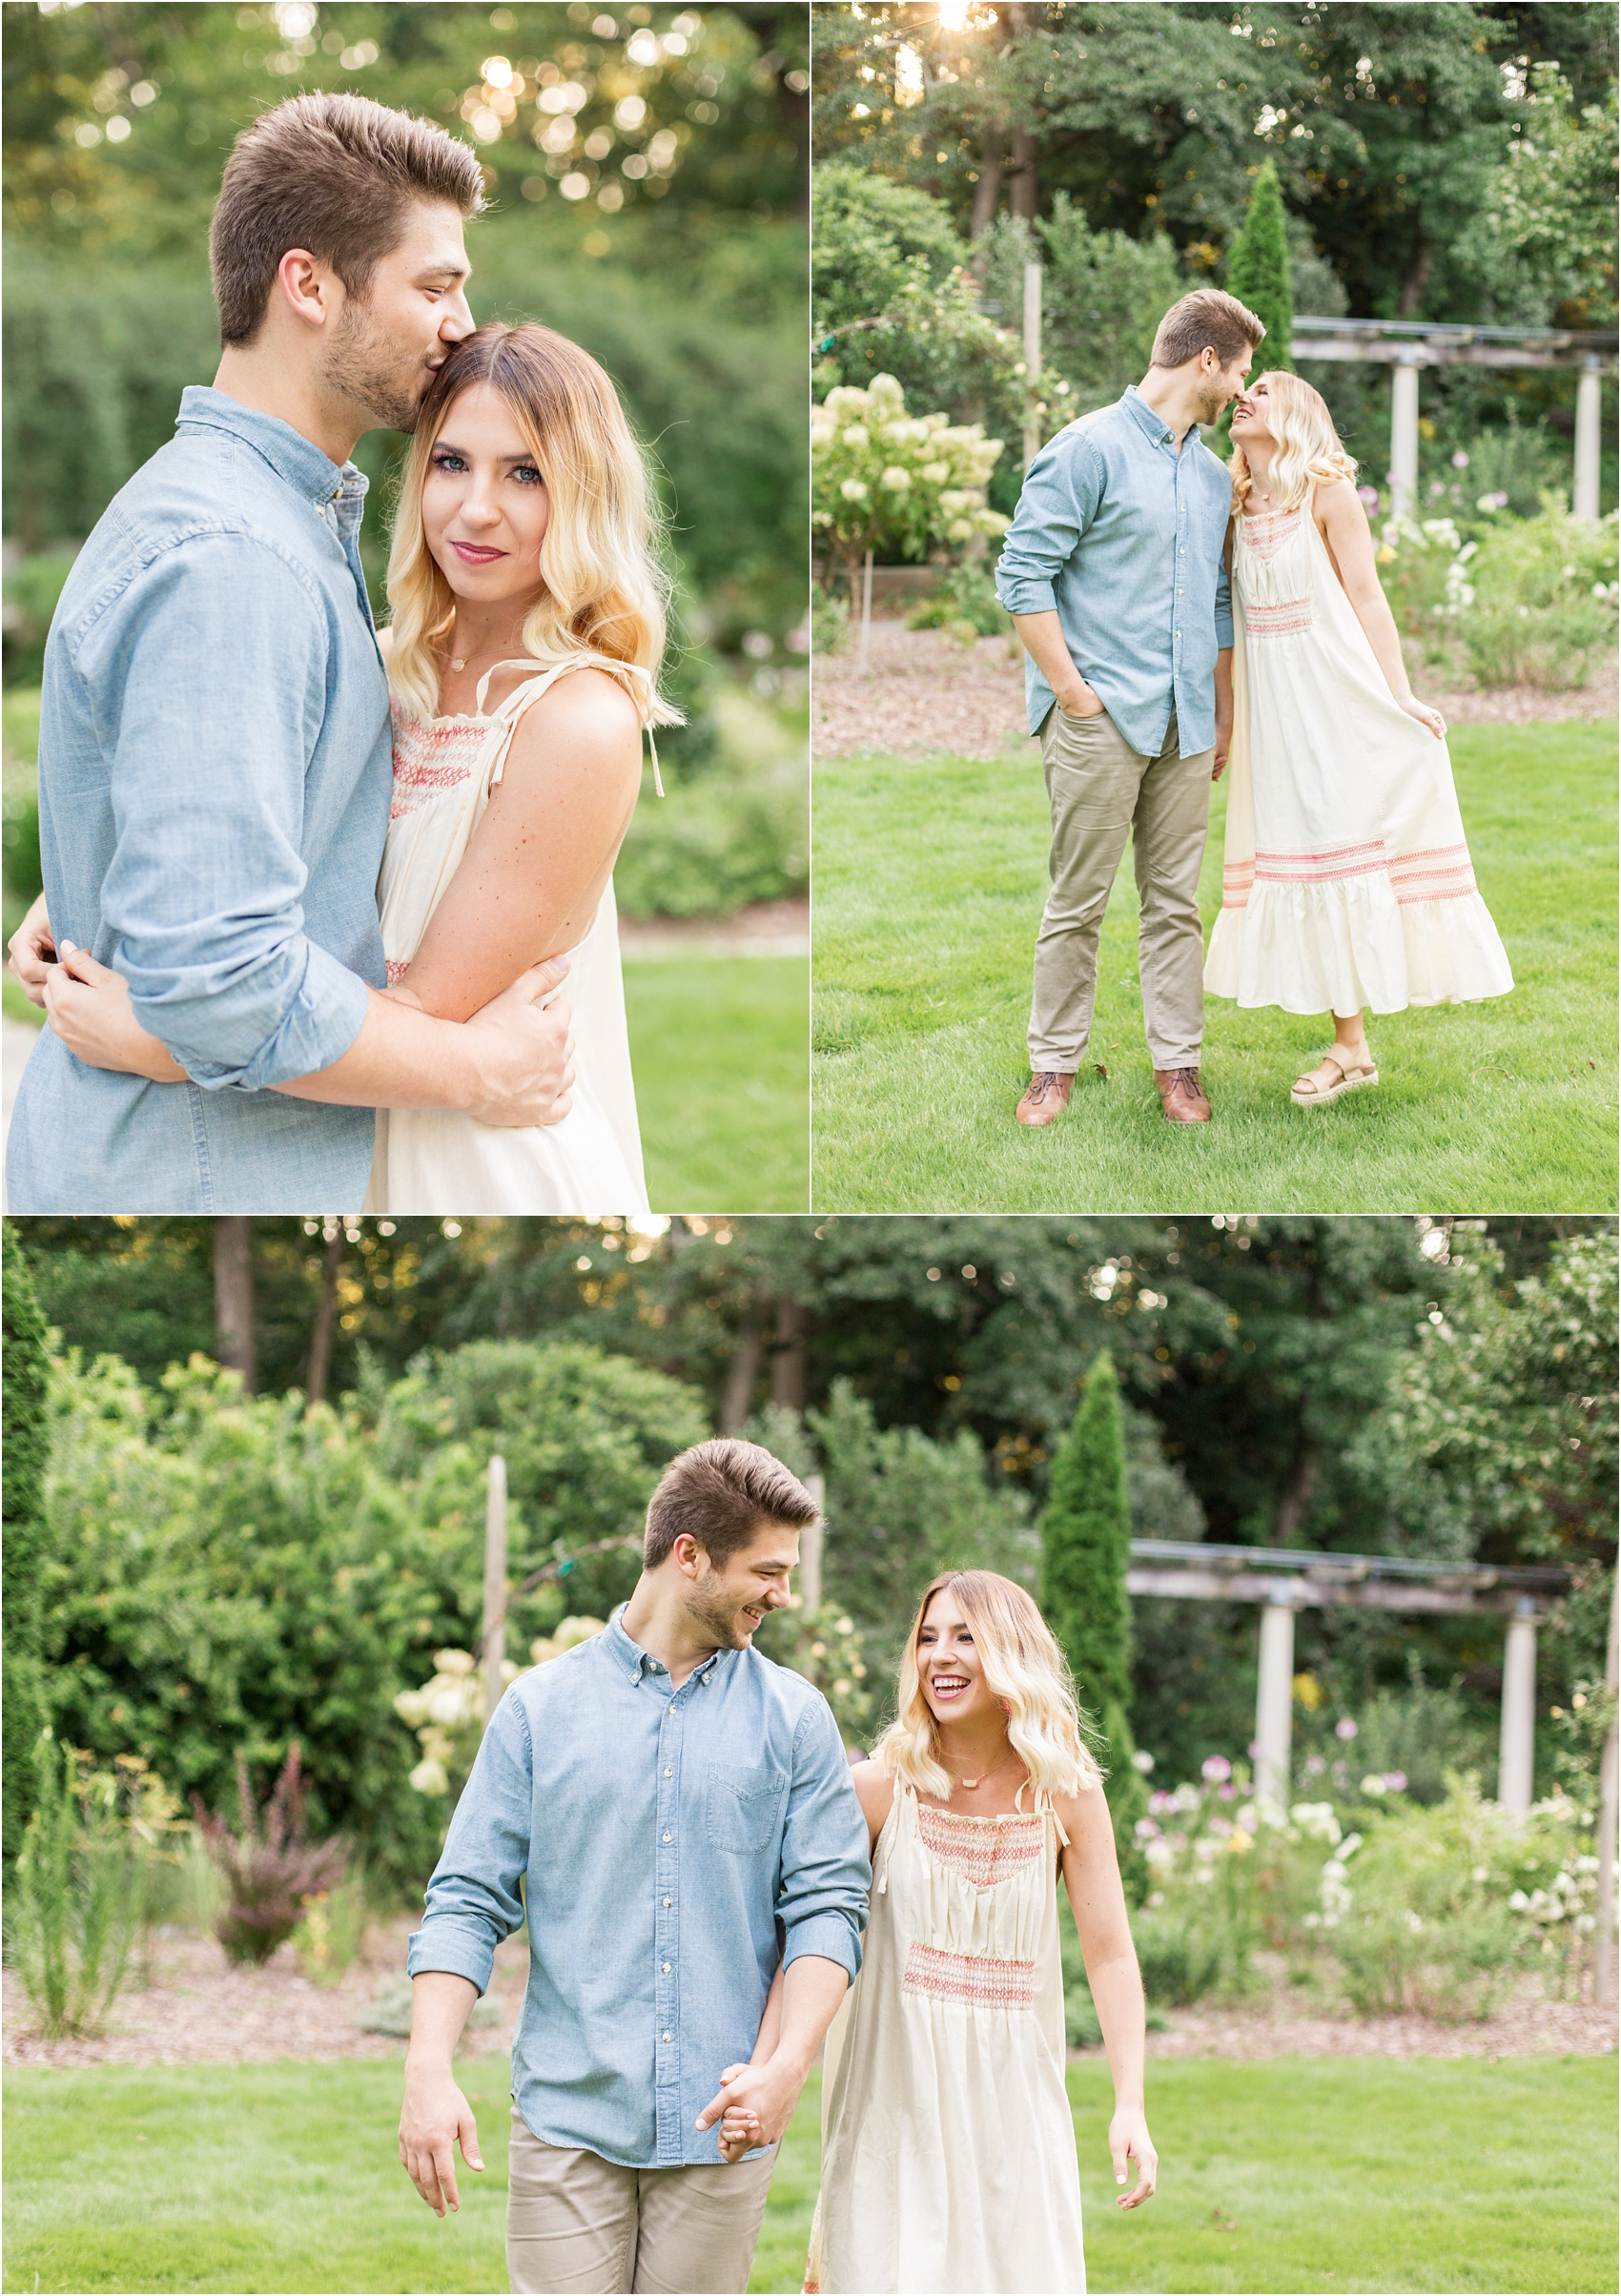 Savannah Eve Photography- Lauren & Chase @ CWG-9.jpg